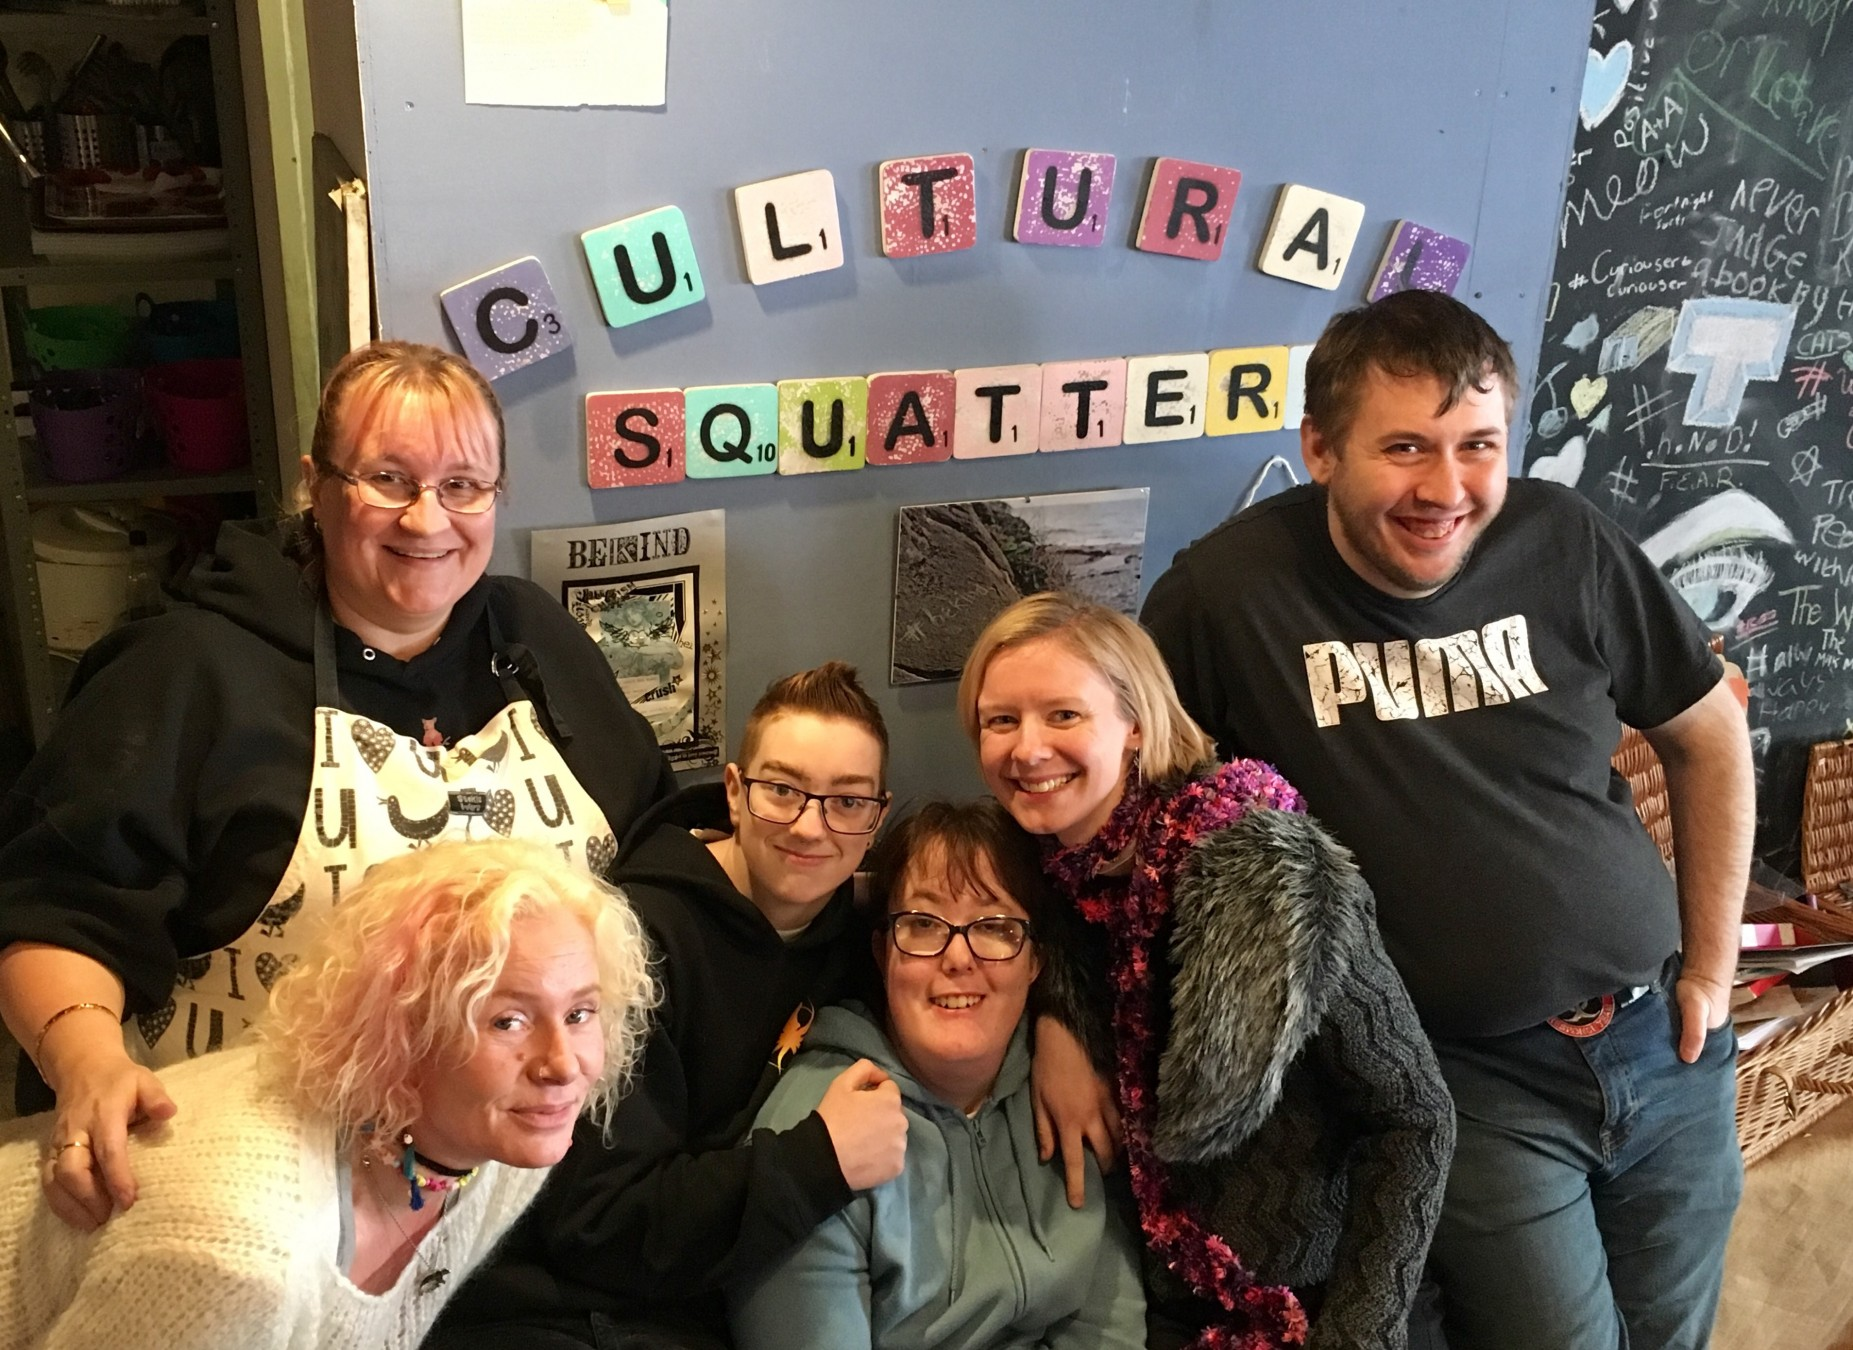 Learning Journey participants at cultural squatters